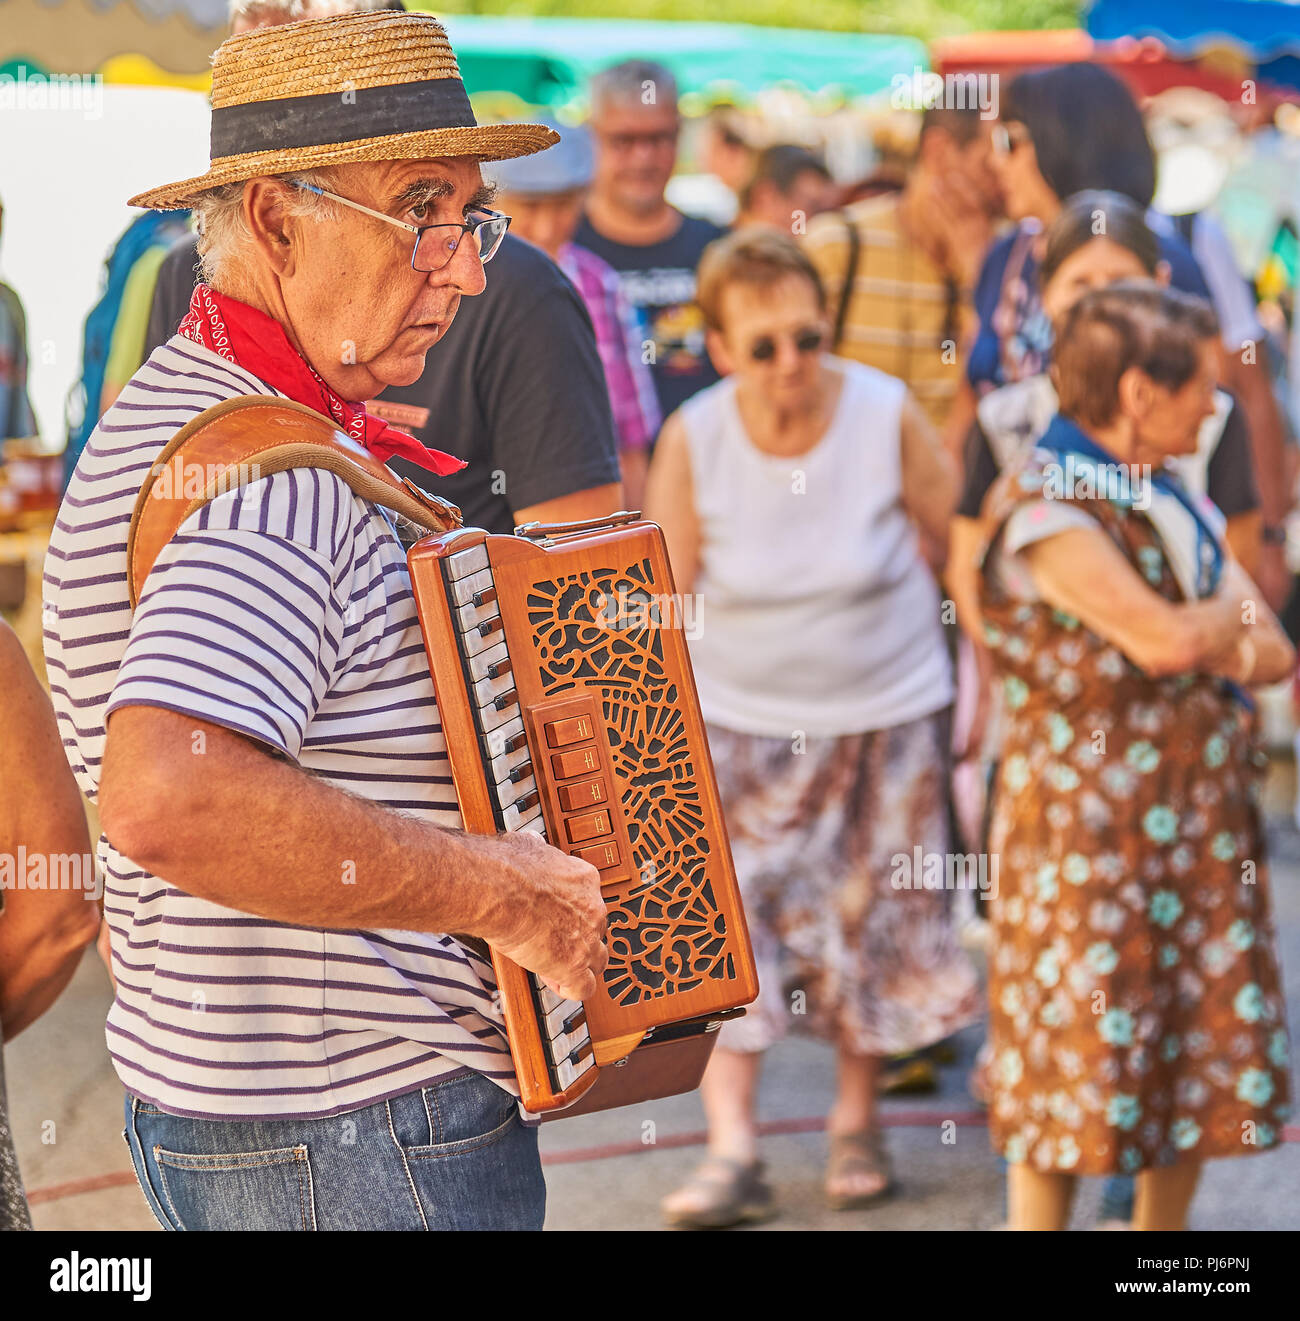 Saint Felicien, Ardeche department of the Rhone Alps and an accordion player entertains people at the cheese festival. Stock Photo